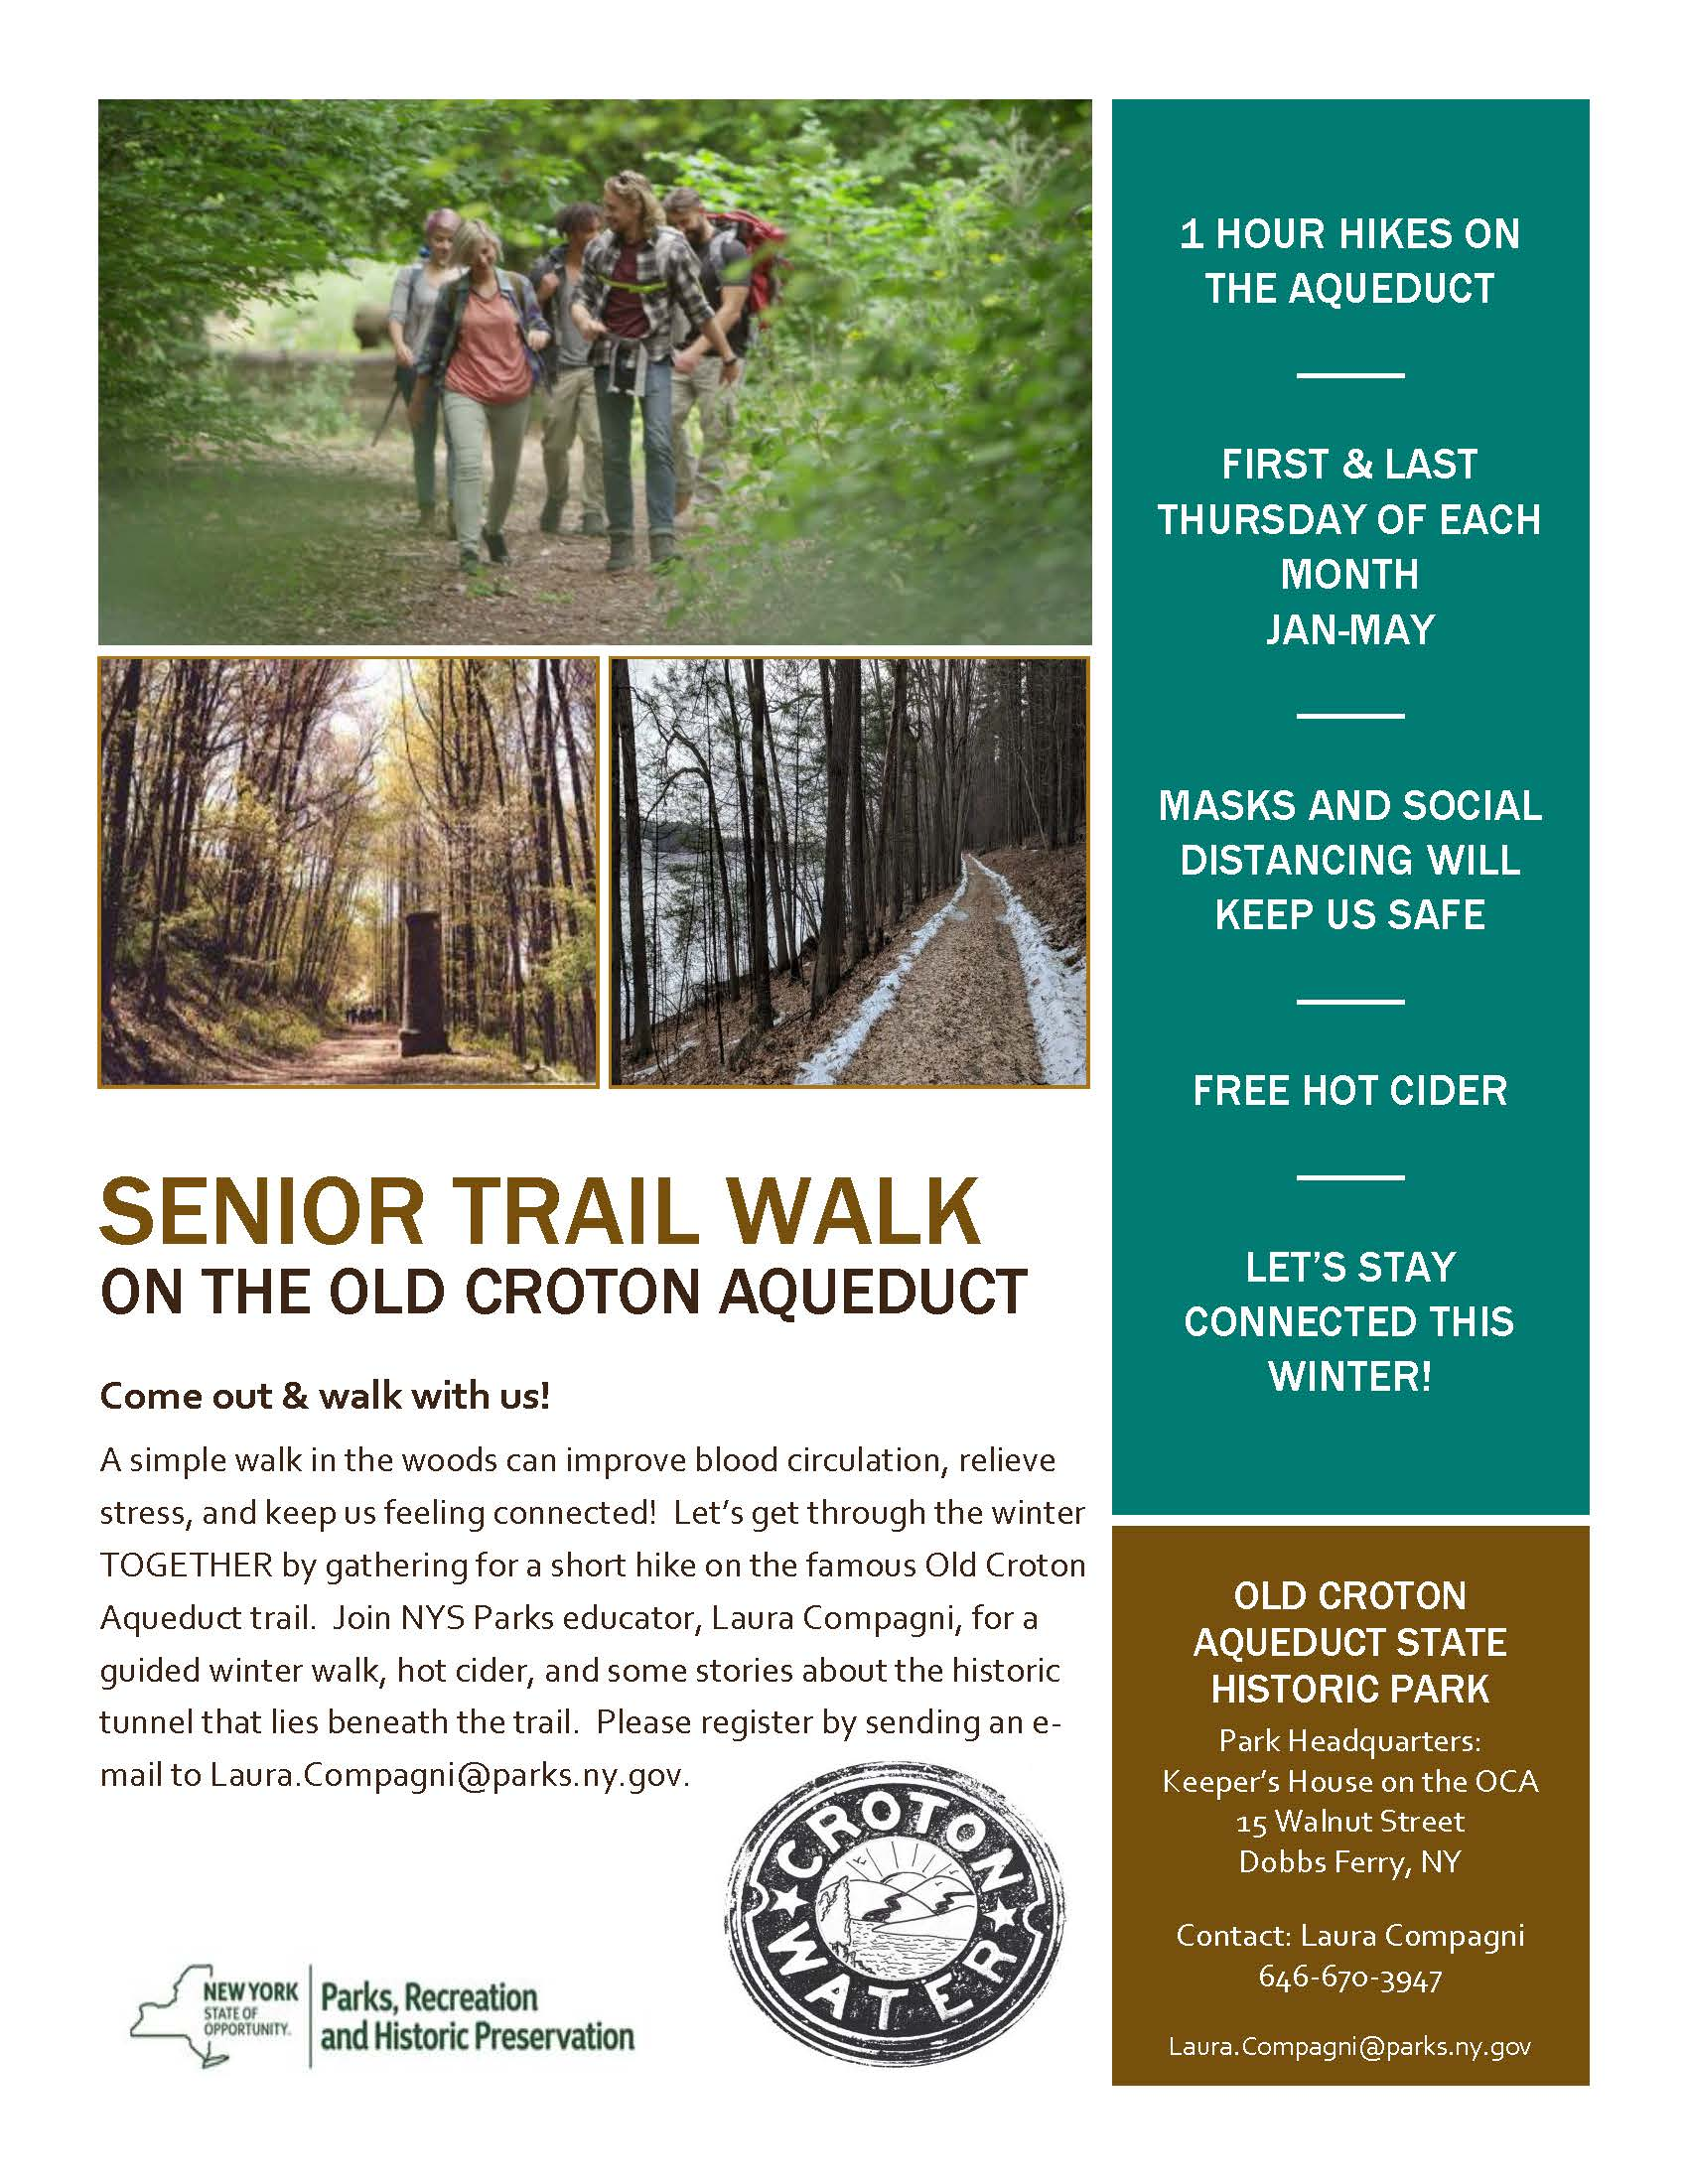 Senior Trail Walks on the Aqueduct